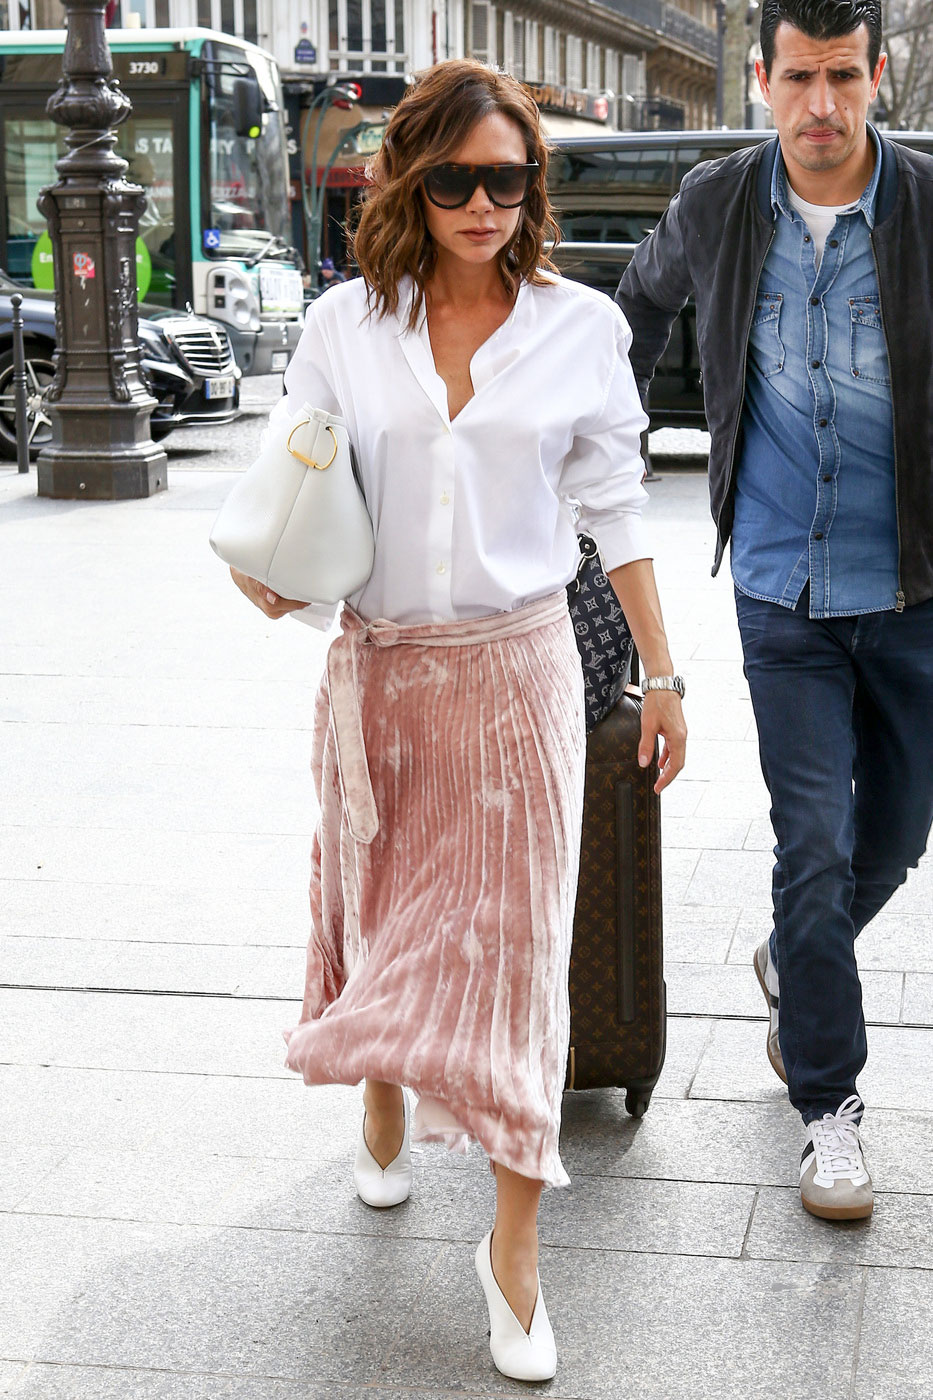 Victoria Beckham wears a pink pleated skirt and white blouse in Paris